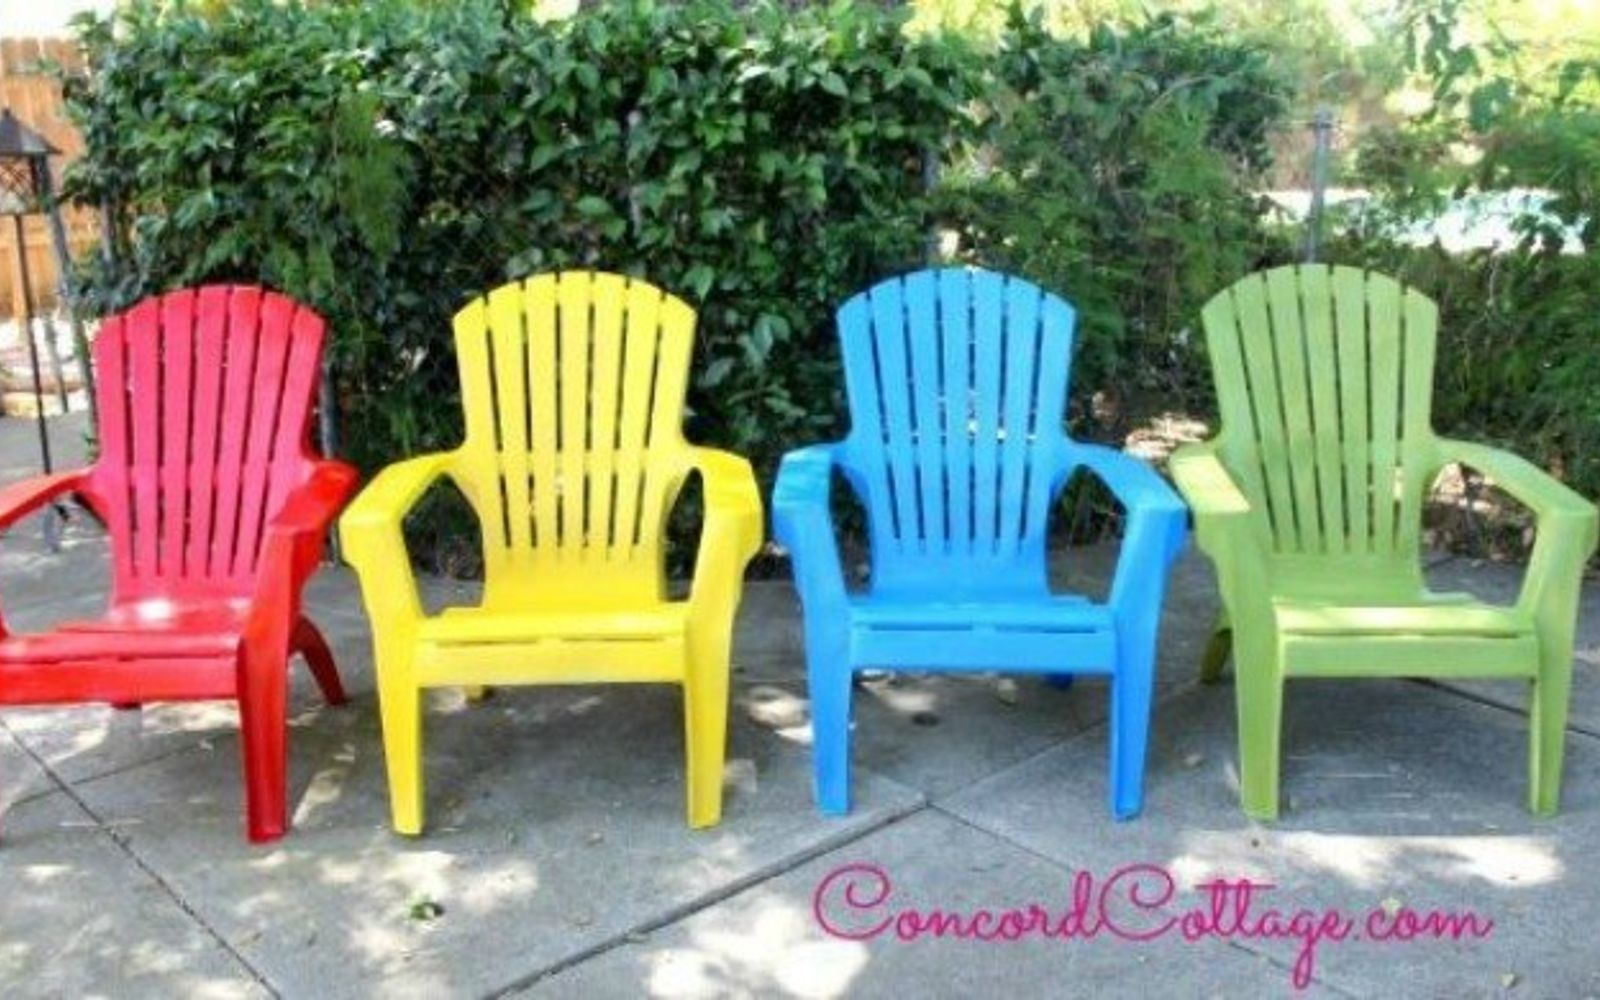 s 12 pool chair ideas we never would have thought of, painted furniture, pool designs, Stick to bright hues for a sunny pop